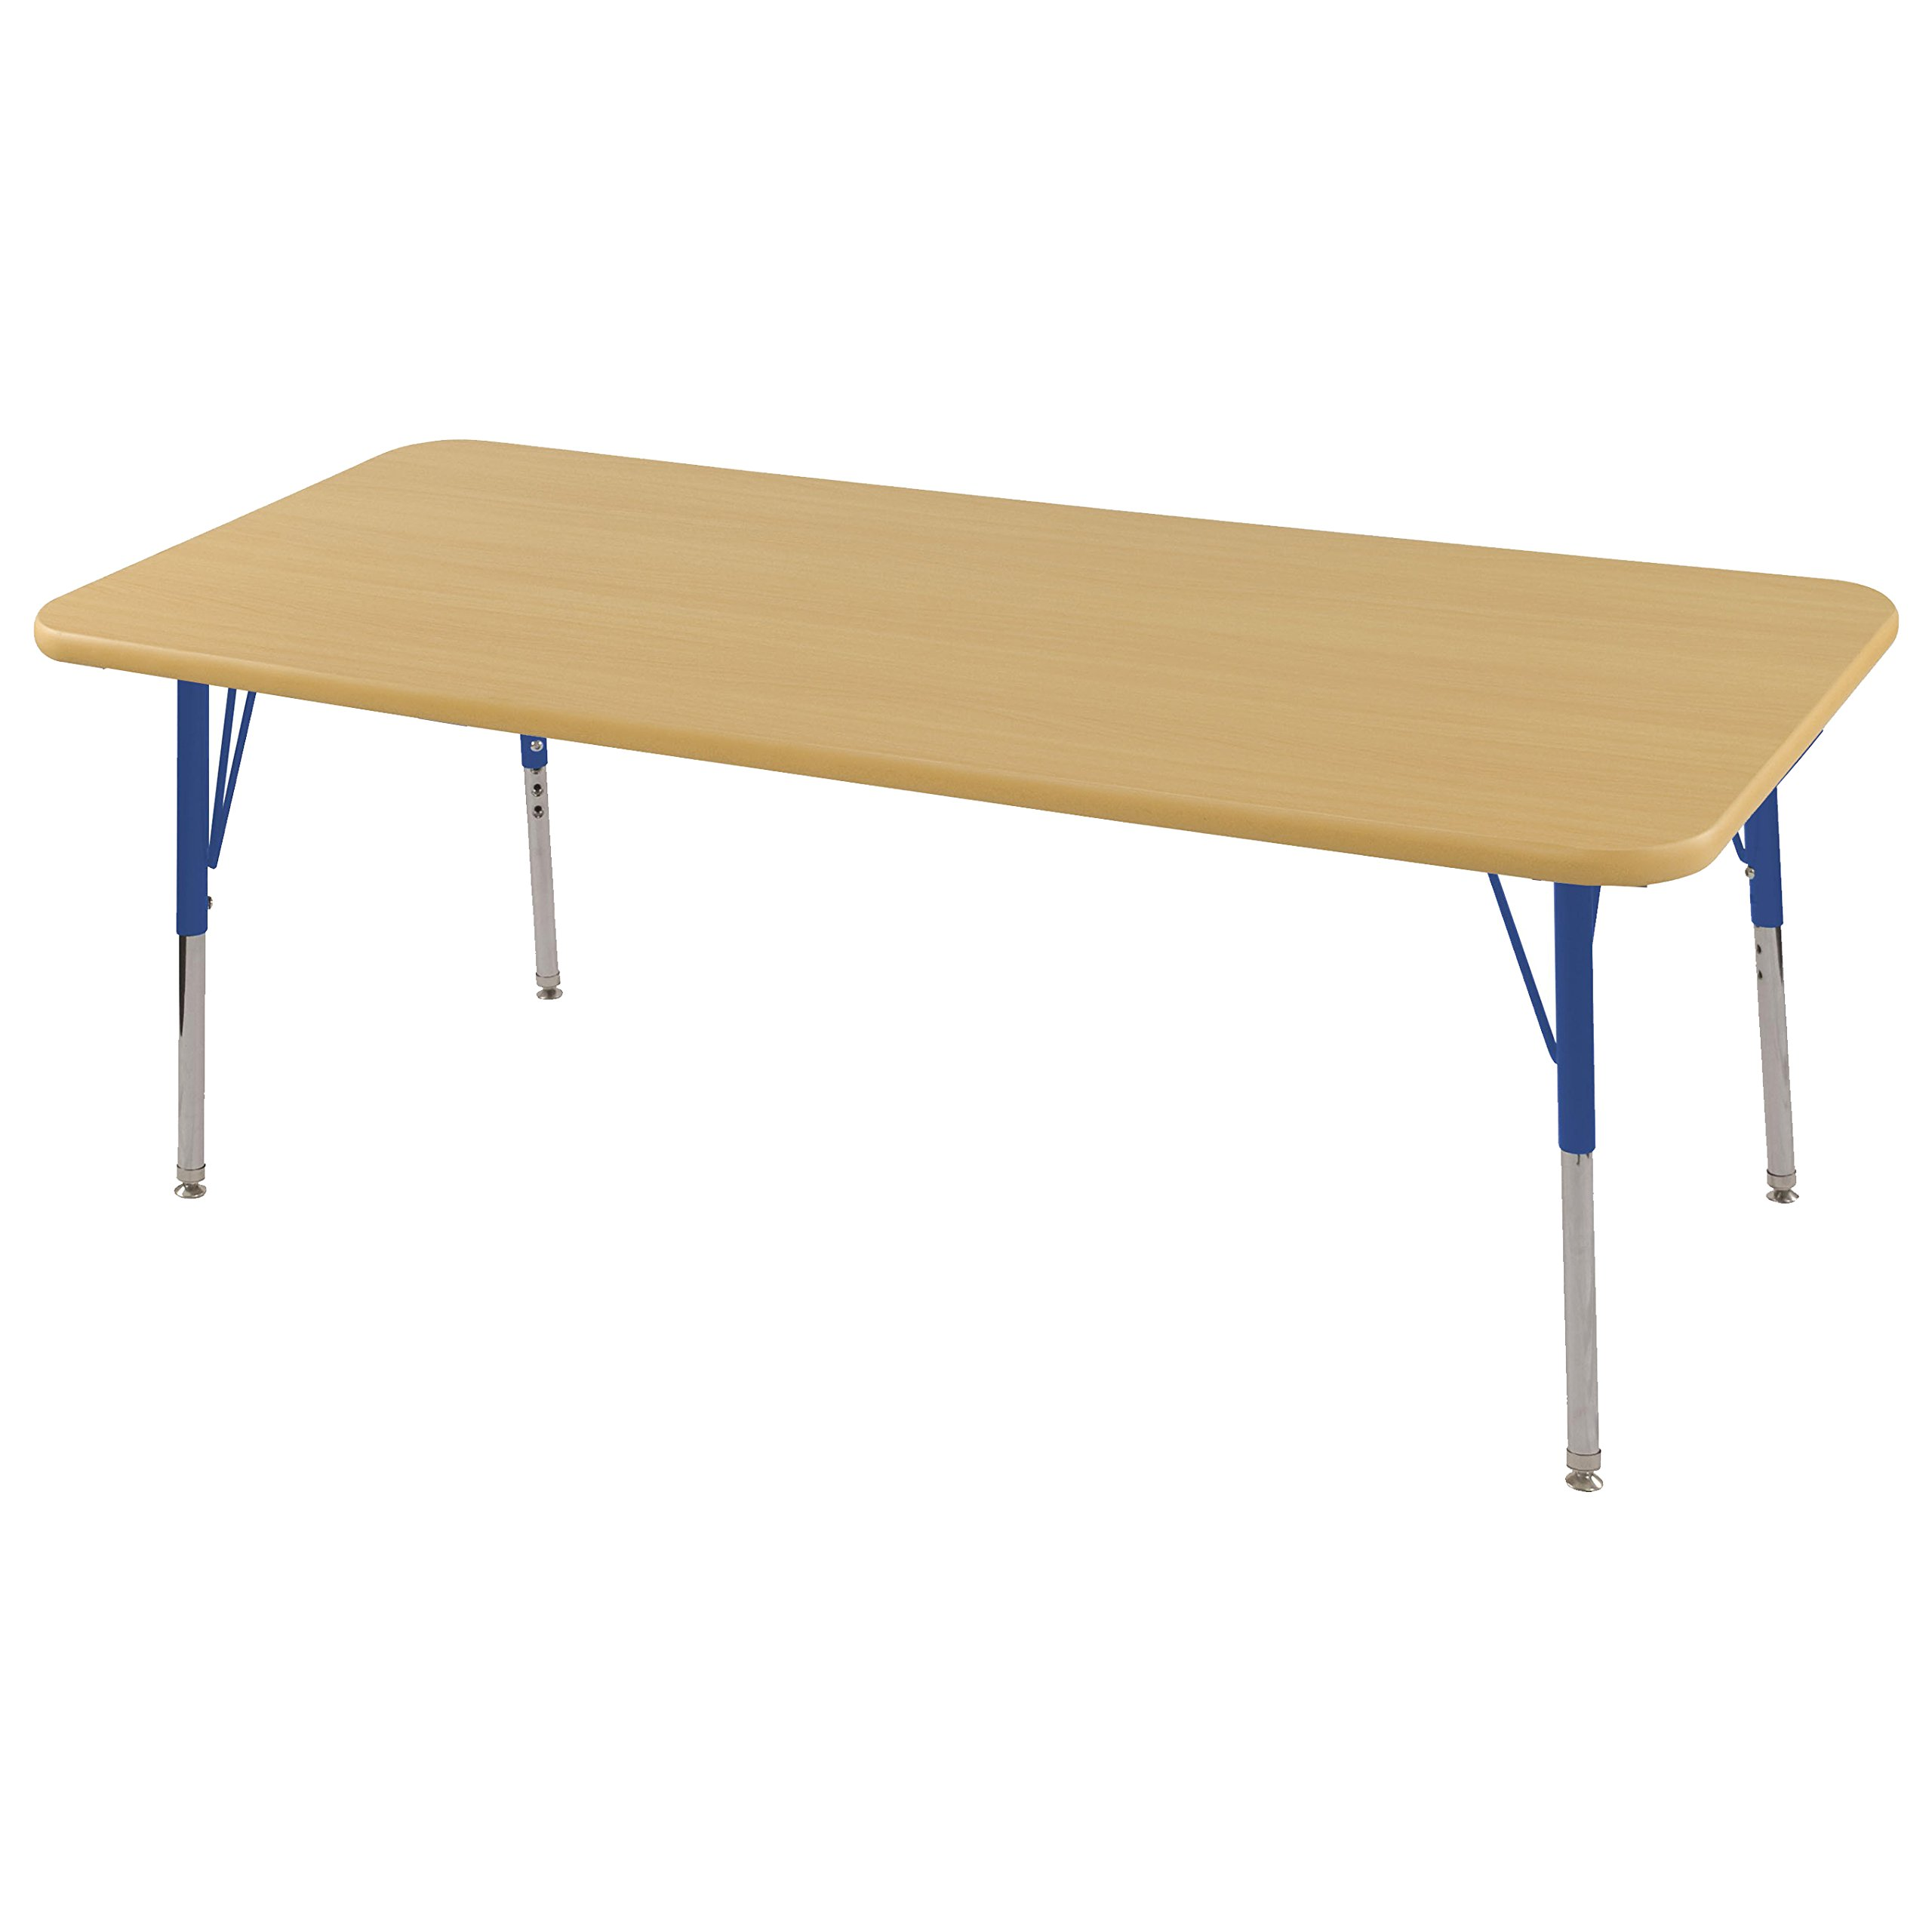 ECR4Kids Mesa Thermo-fused 30'' x 60'' Rectangular School Activity Table, Standard Legs w/ Swivel Glides, Adjustable Height 19-30 inch (Maple/Blue)